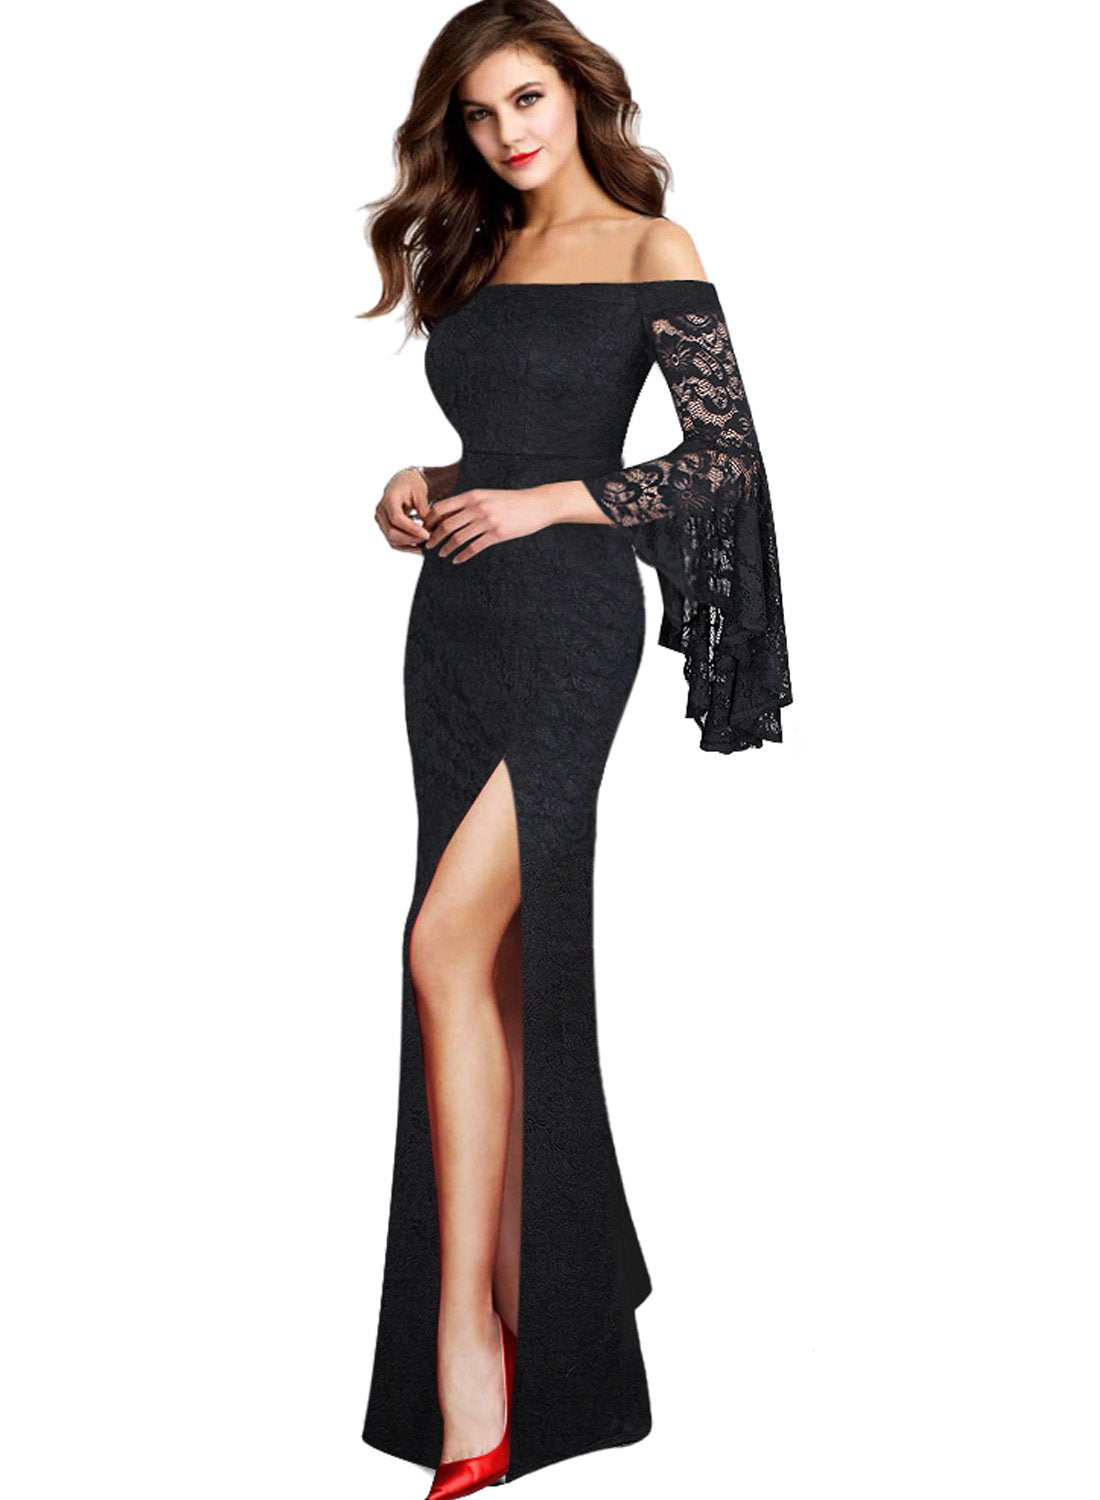 VFSHOW Womens Off Shoulder Bell Sleeve High Slit Formal Evening Party Maxi Dress - wiihuu